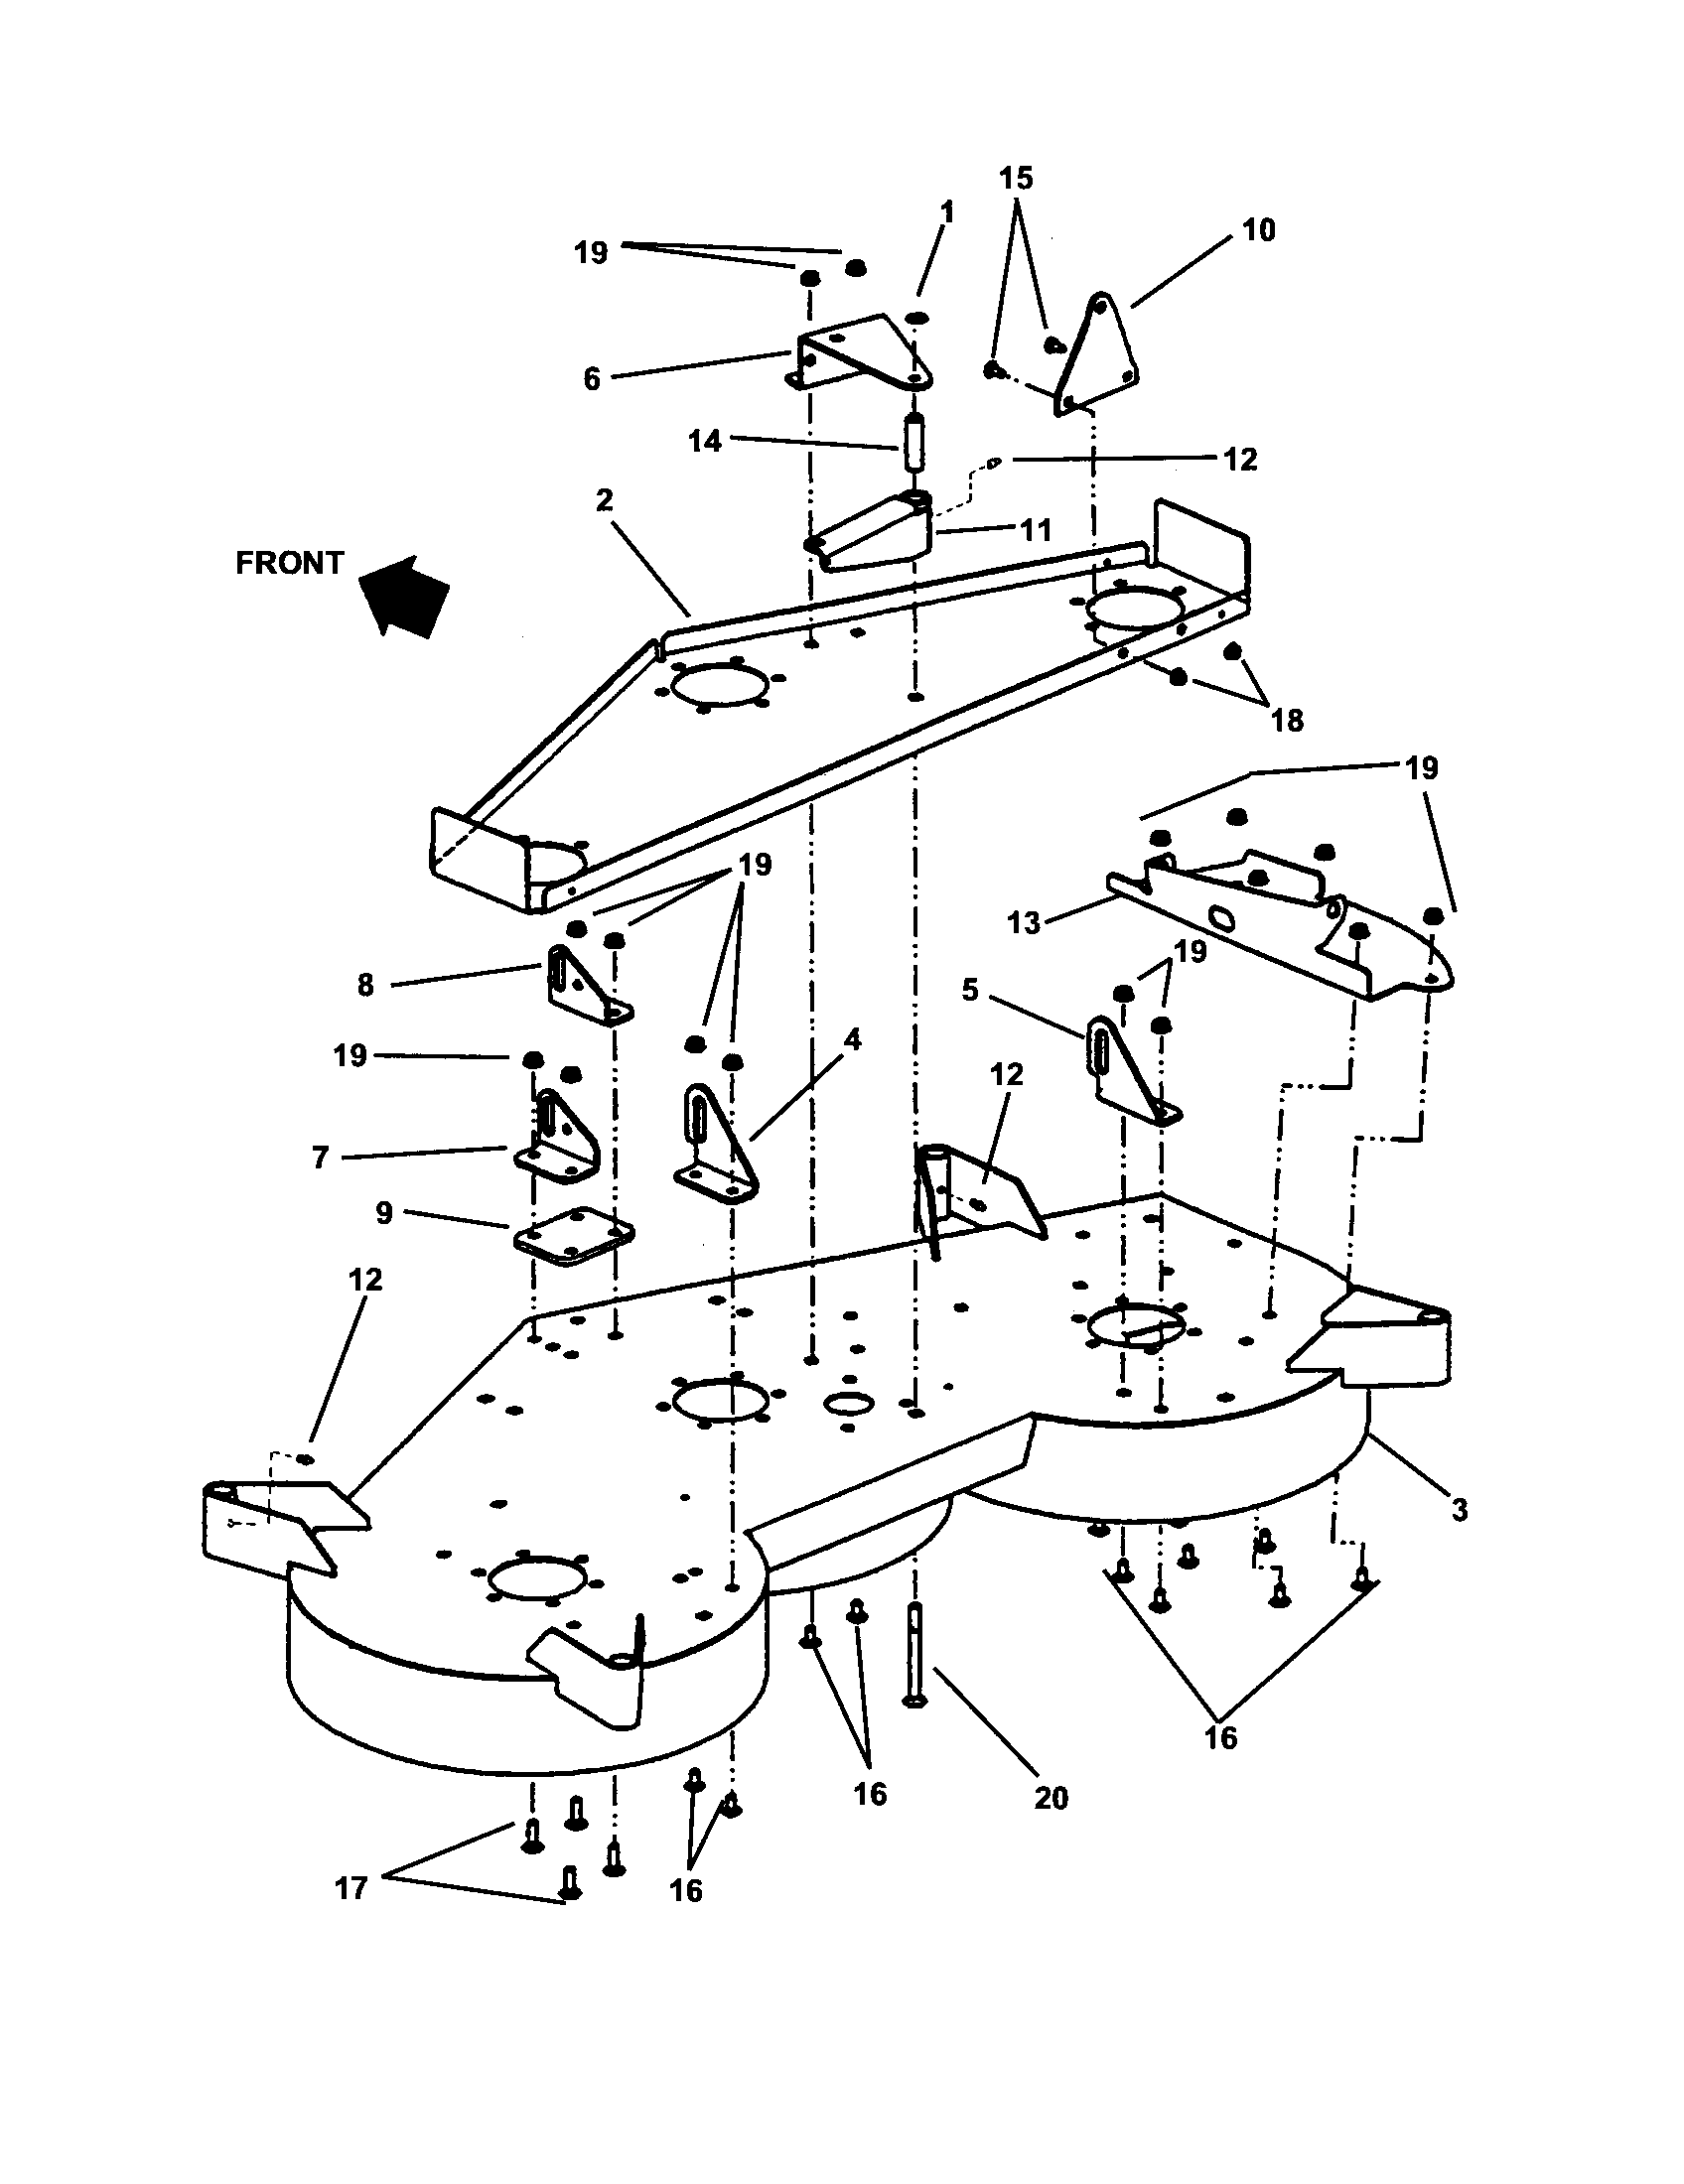 P0807066 00019?resize\\\\\\\=665%2C863 electrical wiring diagram 93 ford probe wiring diagrams 1994 Ford Probe at edmiracle.co